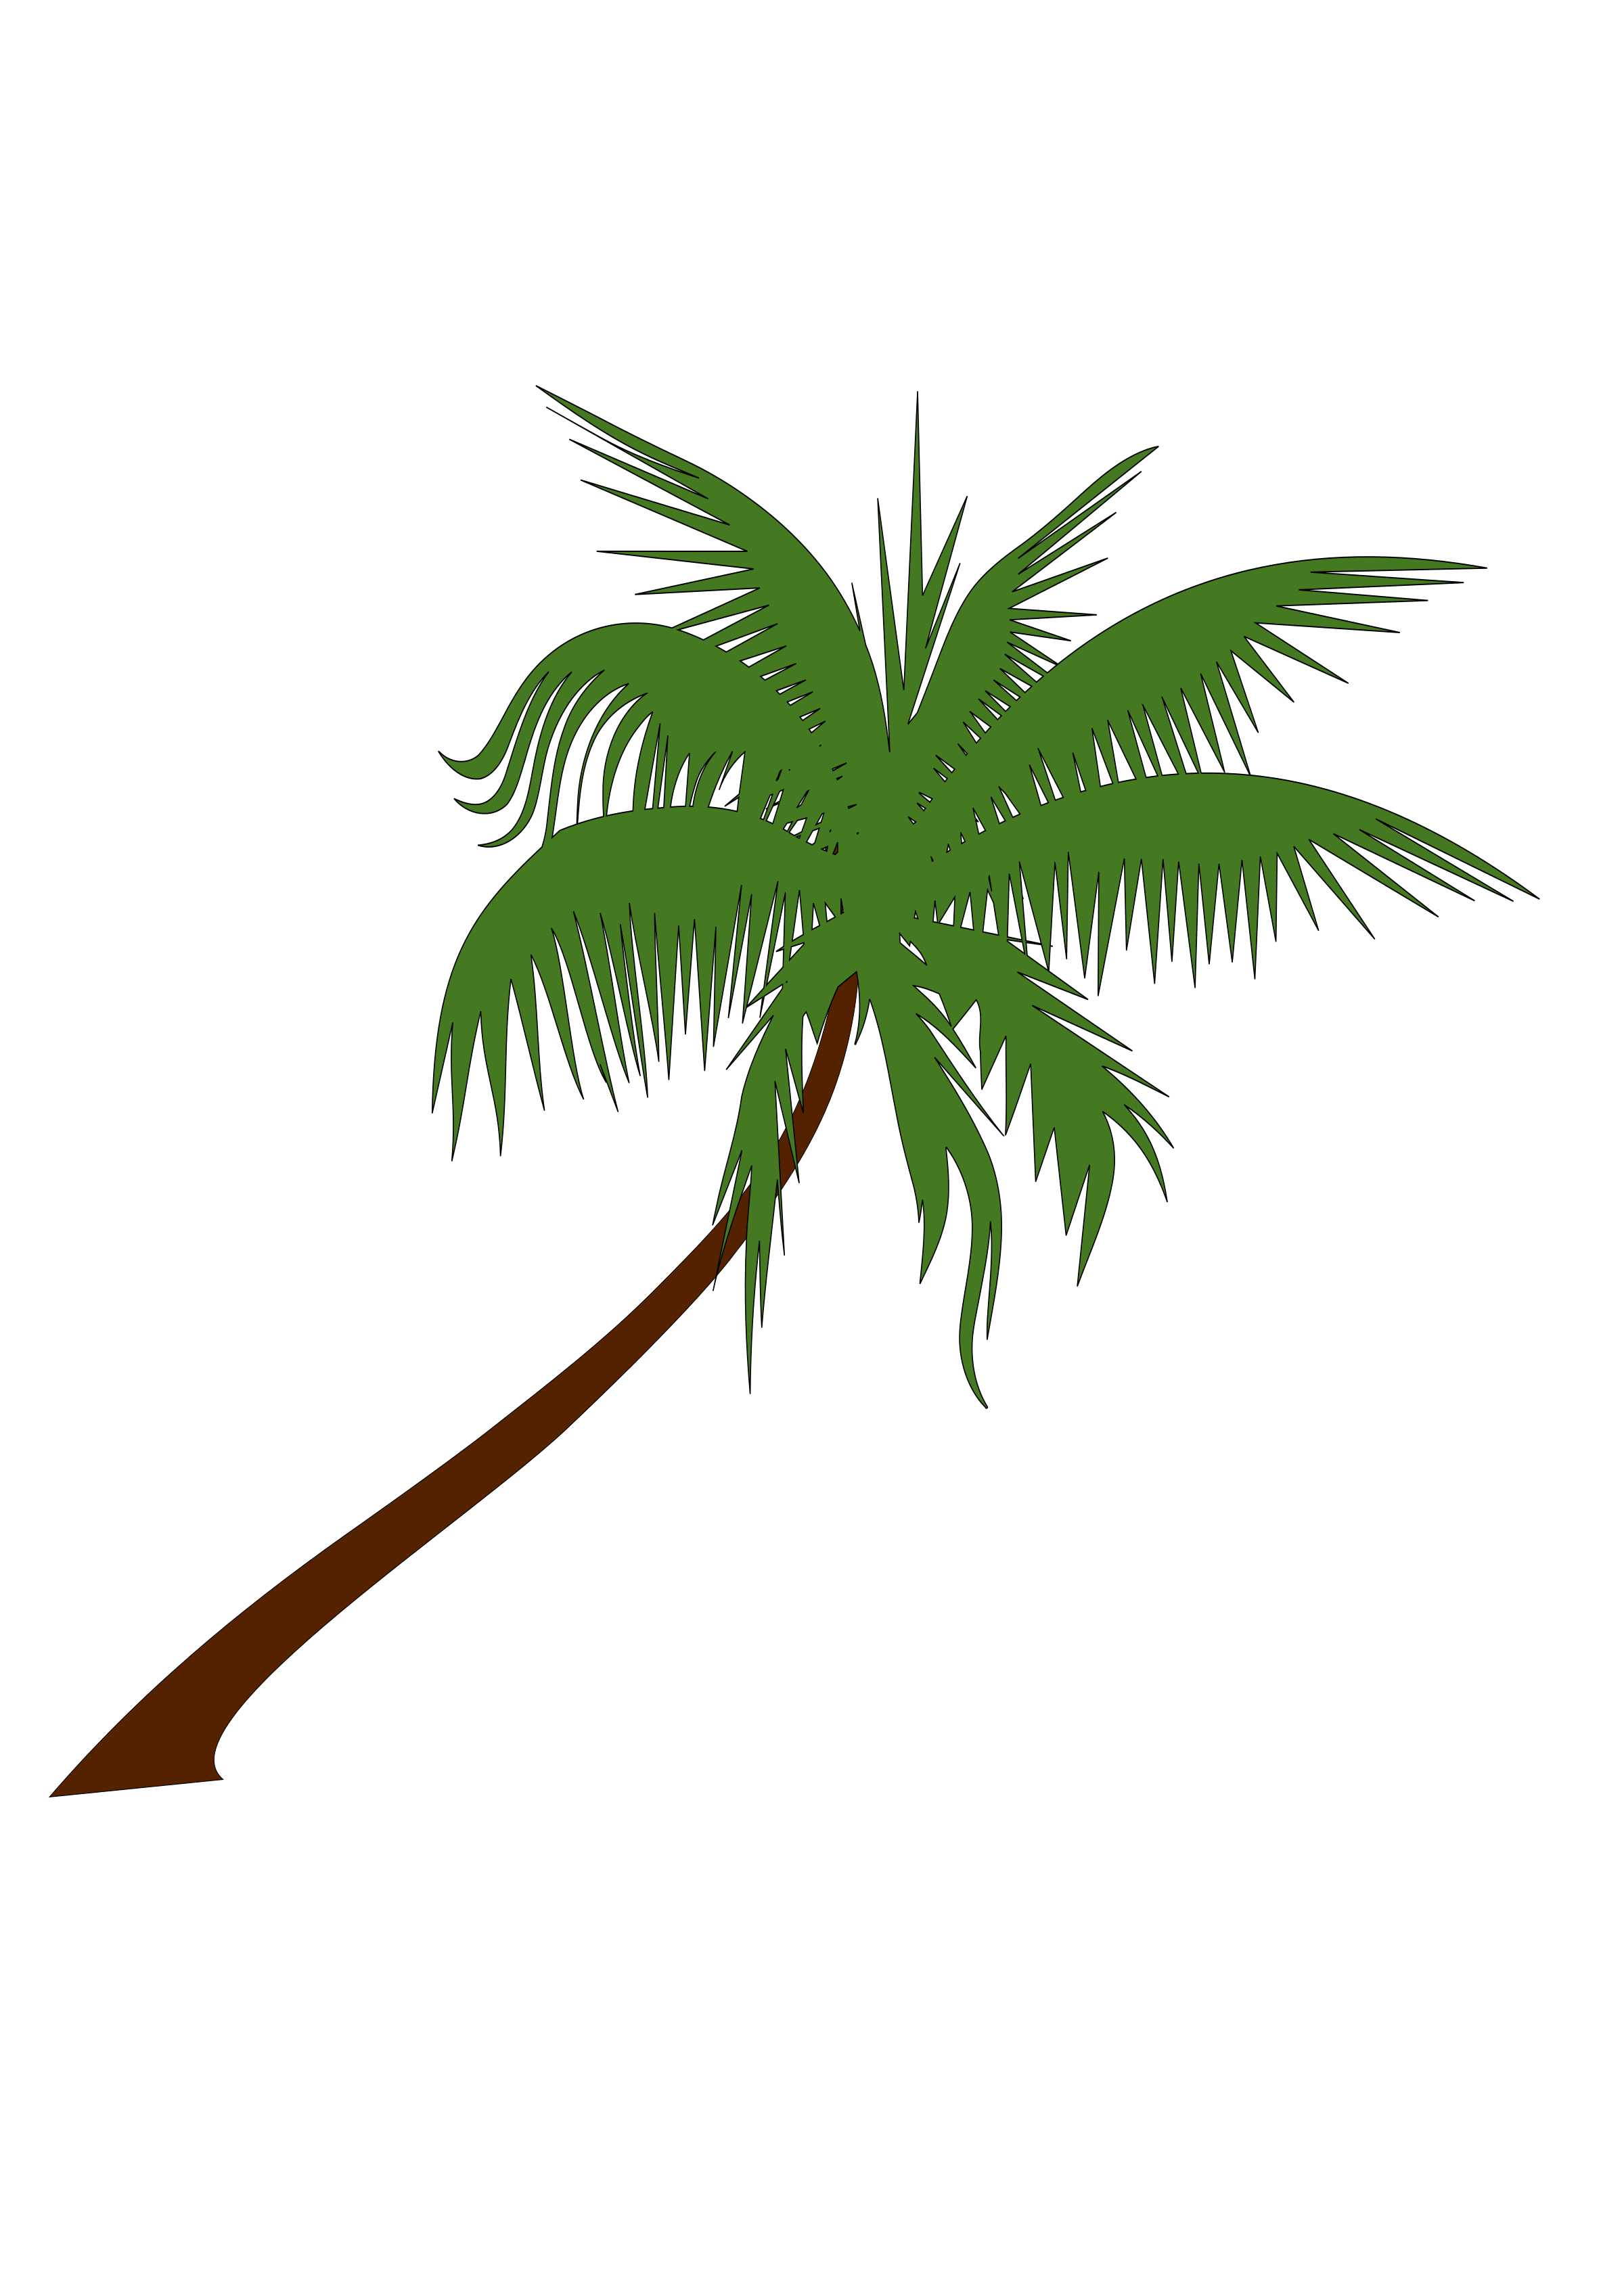 Palm big image png. Clipart leaf coconut tree